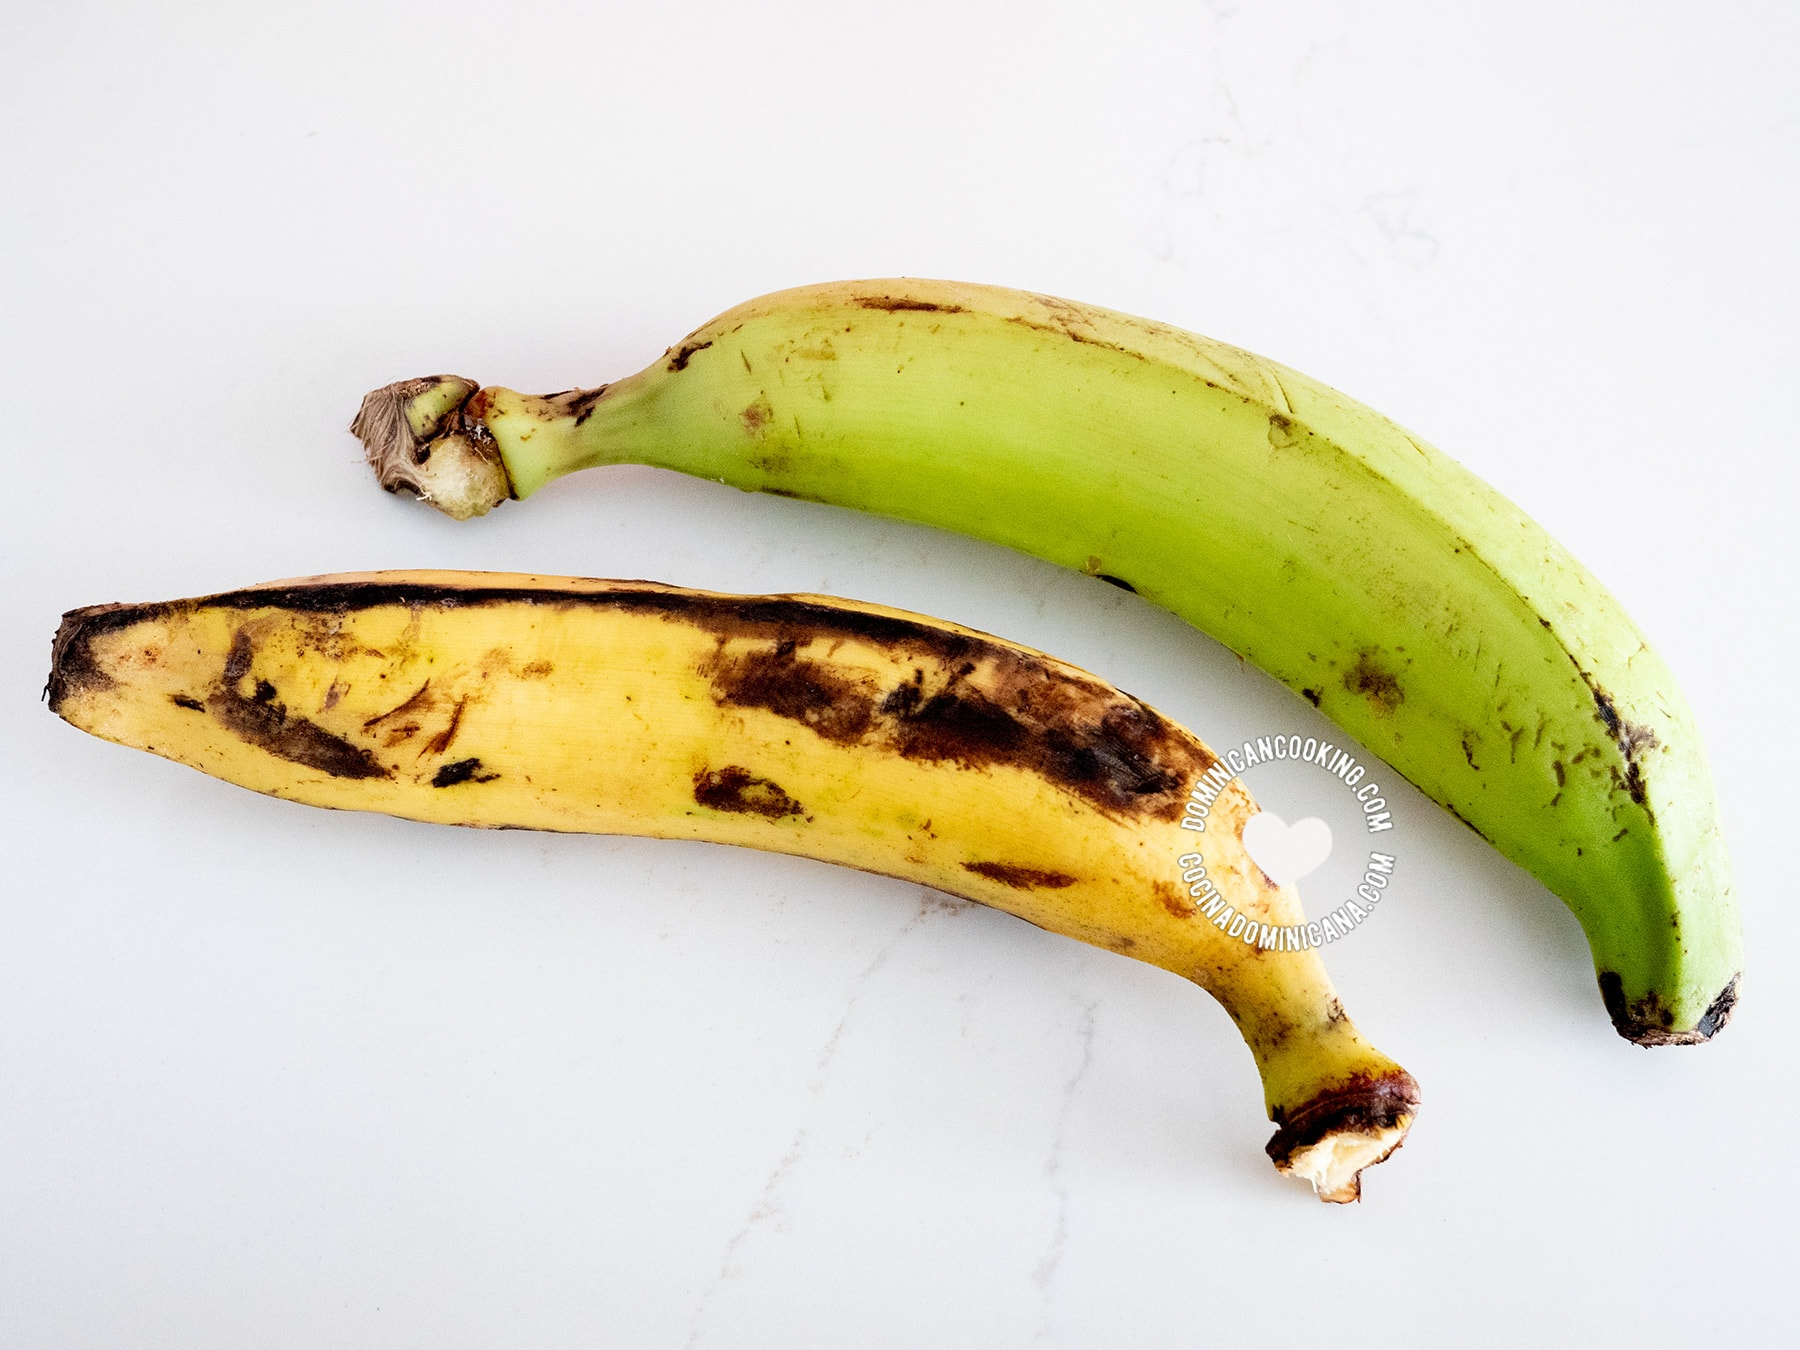 Green (unripe) and yellow (ripe) plantains